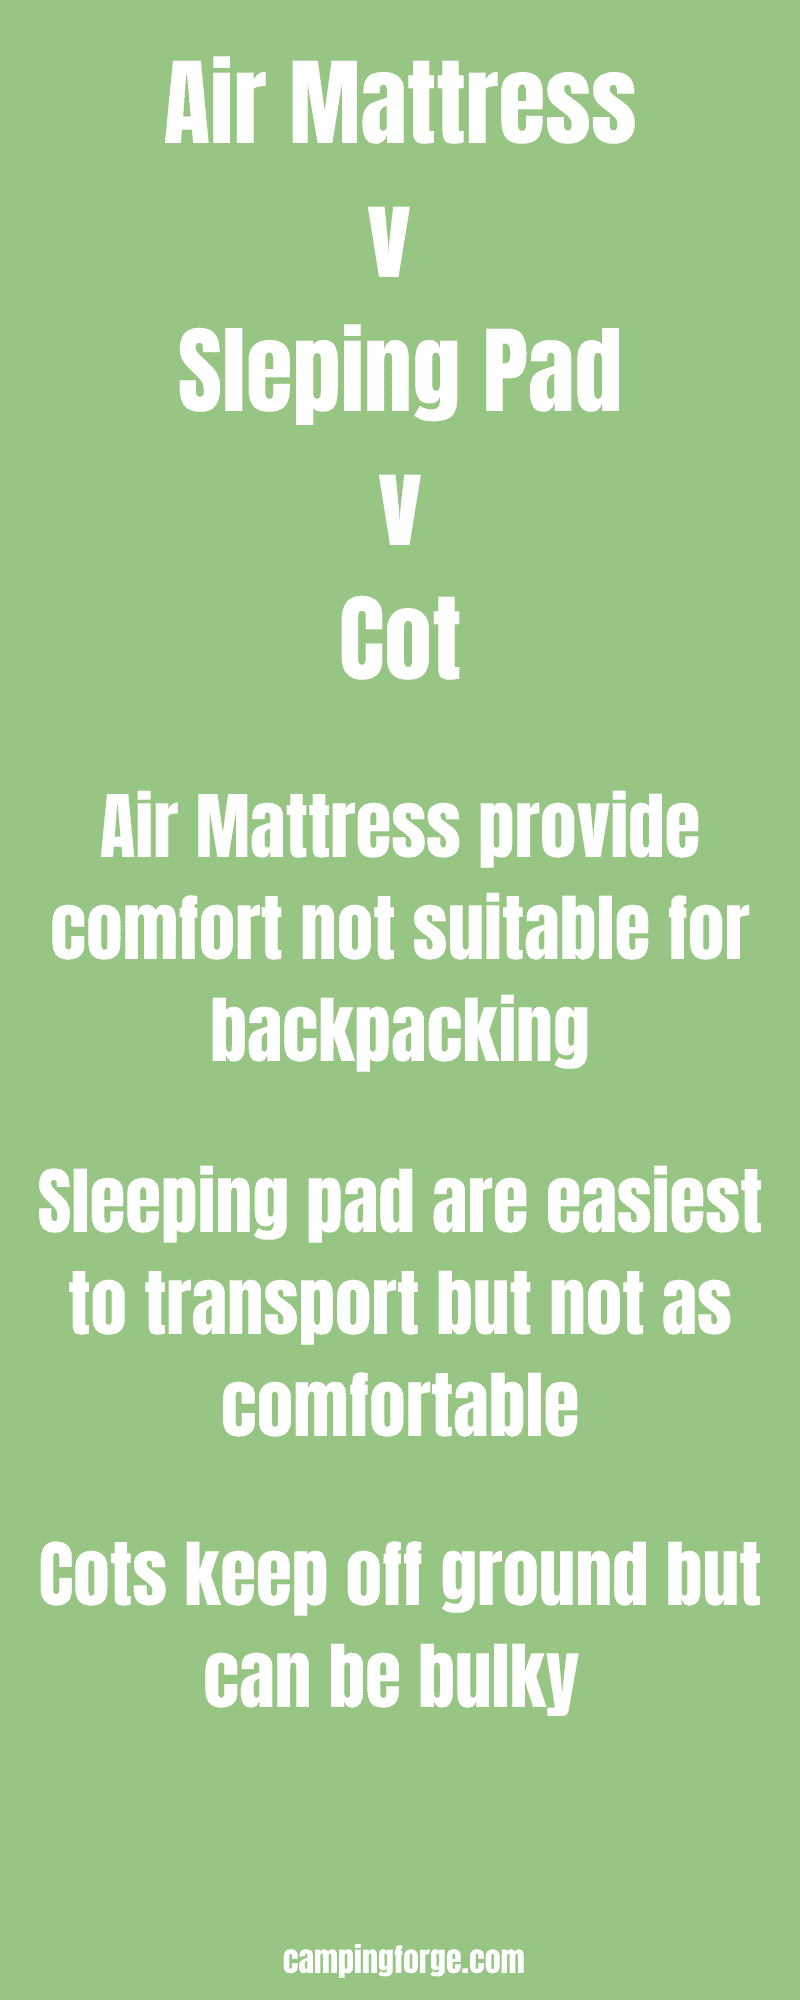 An infographic comparing air mattreses to sleeping pads to cots for camping and backpacking